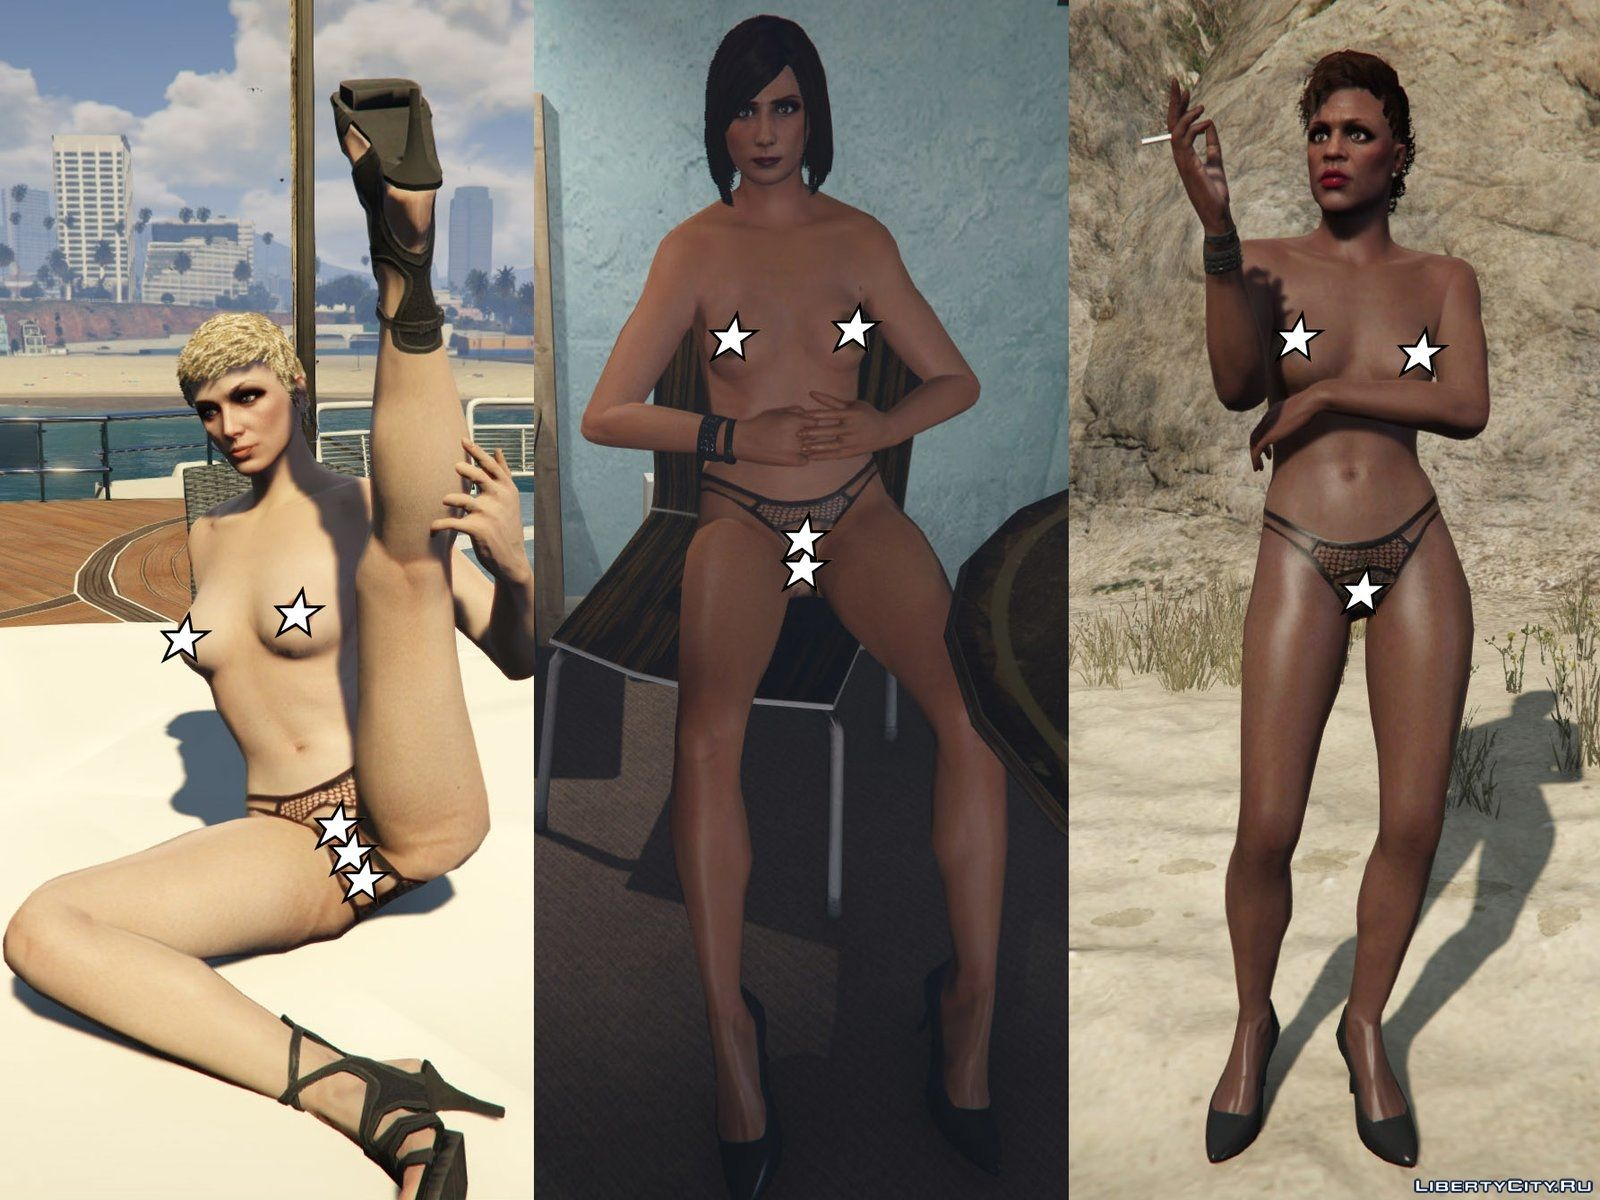 Gta 4 nude girls mod erotica film